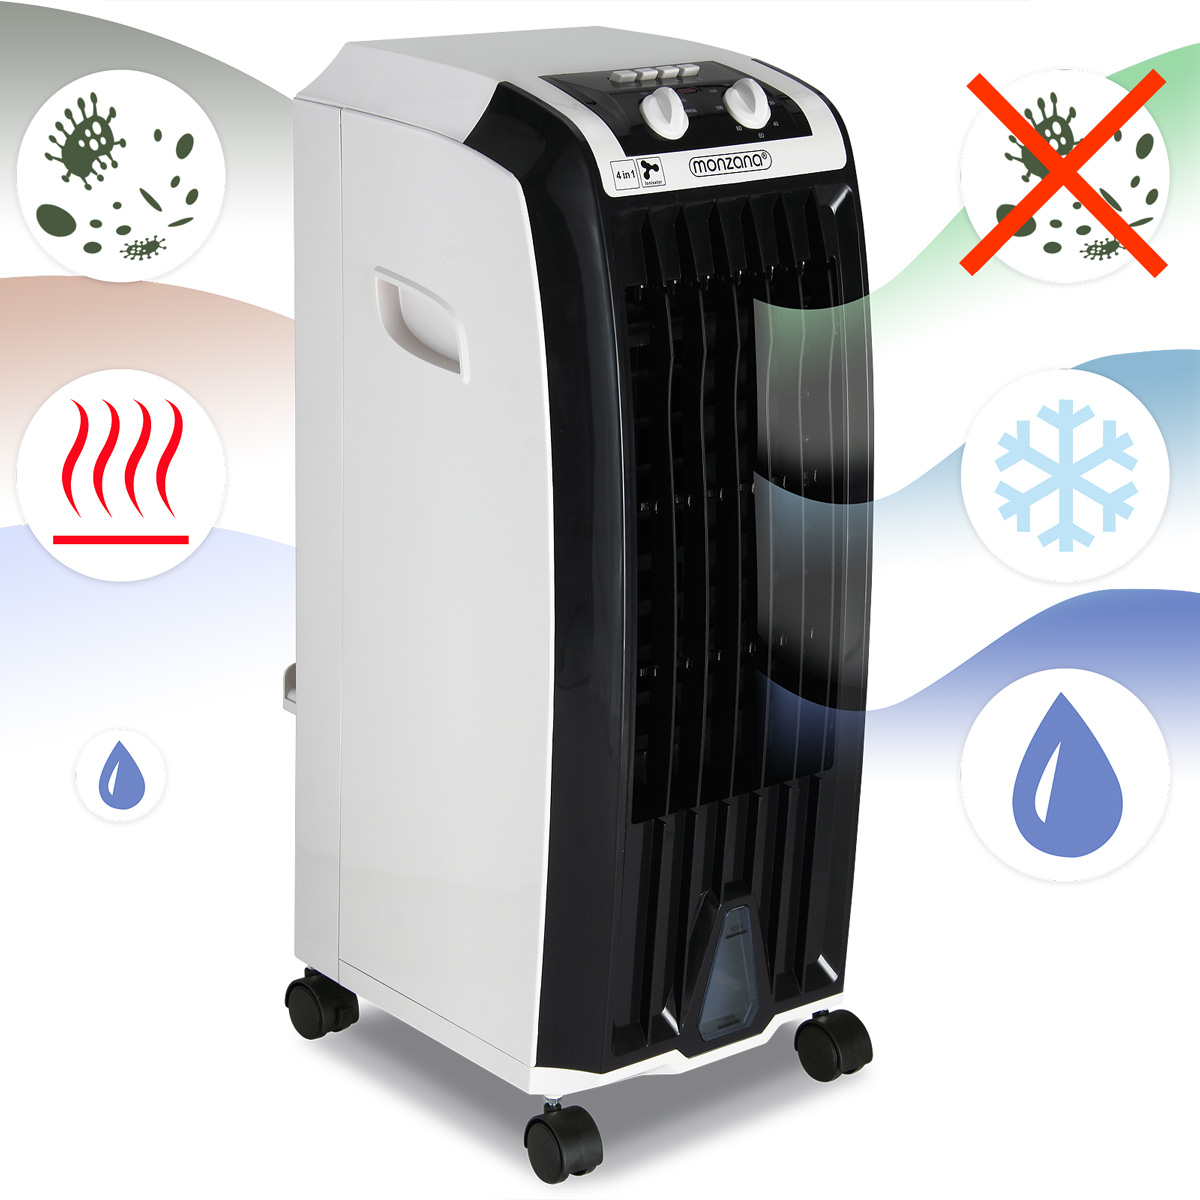 climatiseur 4 en 1 ventilateur climatiseur humidificateur purificateur d 39 air ebay. Black Bedroom Furniture Sets. Home Design Ideas